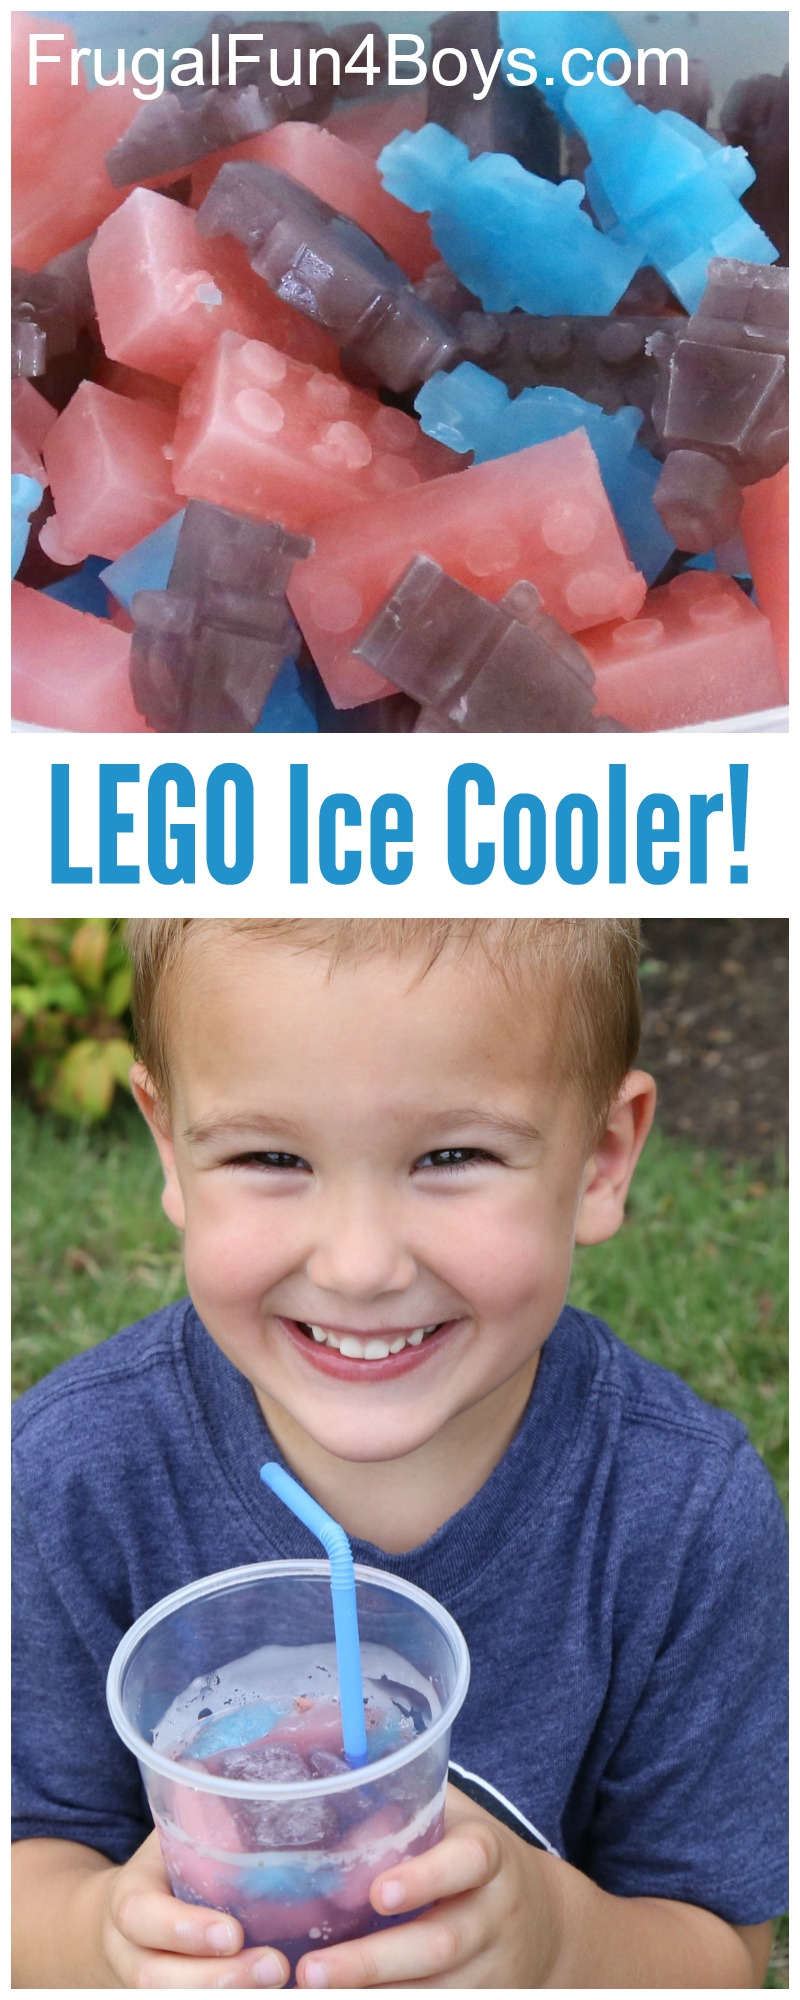 LEGO Party Drink for Kids - LEGO Ice Cooler!